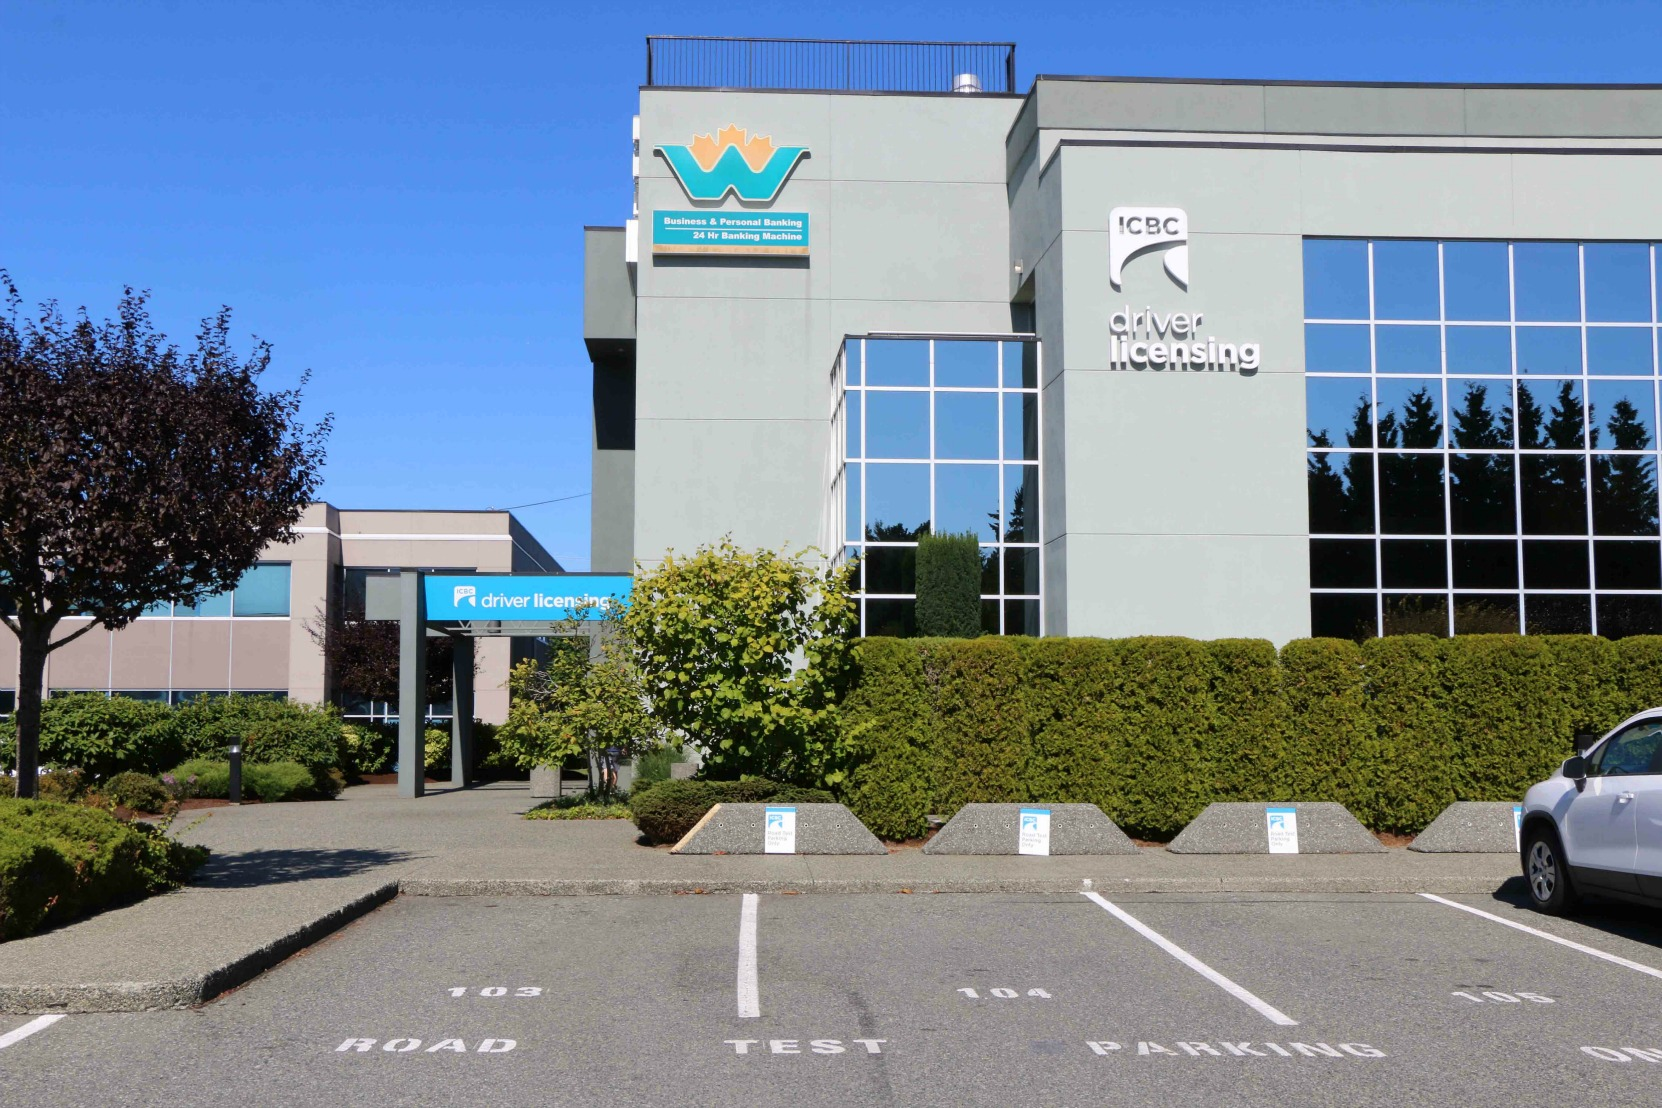 ICBC Driver Licensing office, Nanaimo, B.C. (photo by WestCoastDriver Training.com)